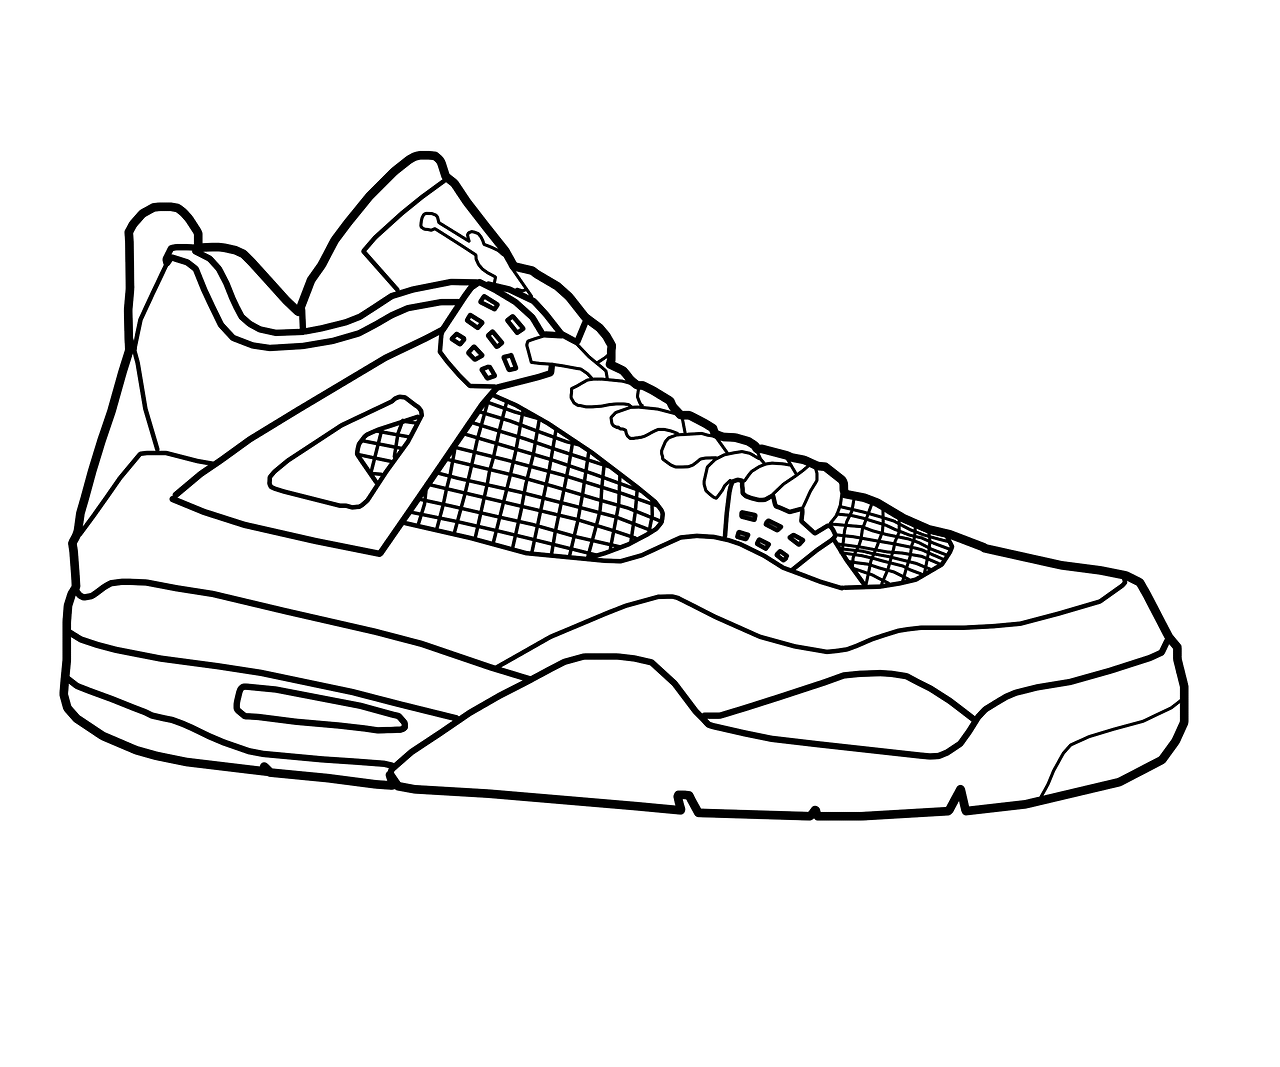 Soccer Cleats Drawing At Getdrawings Com Free For